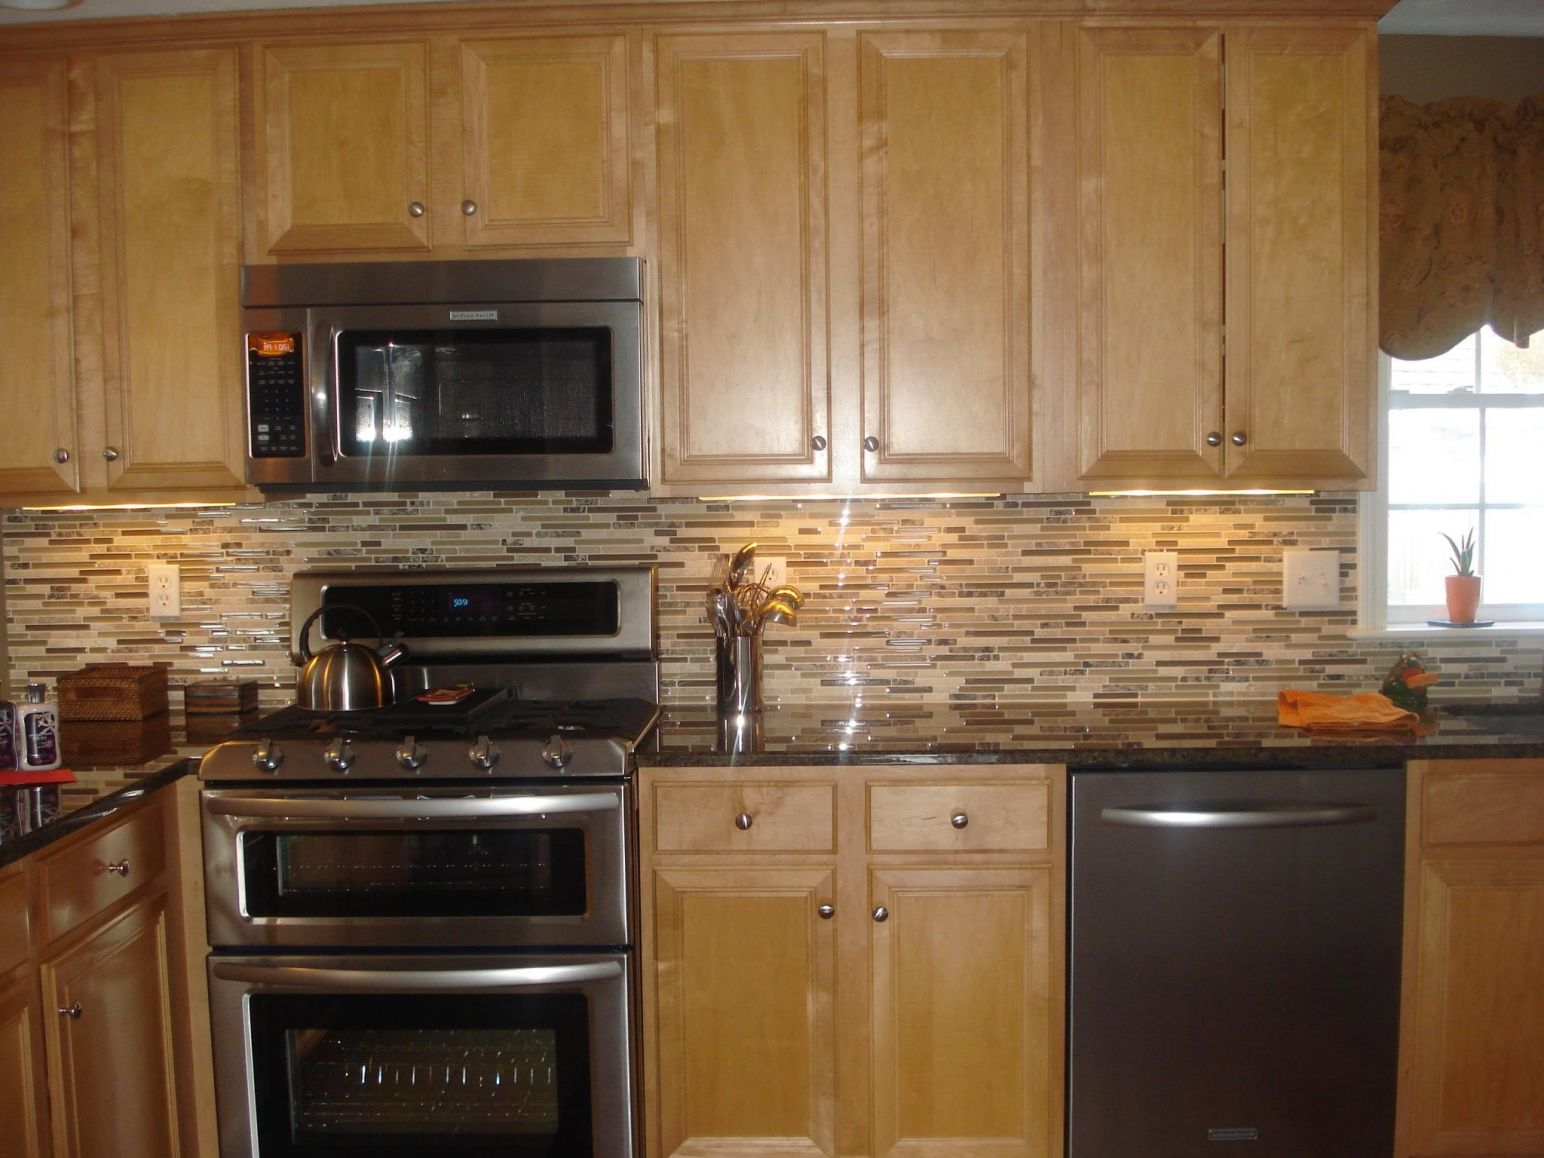 100 what is the best color for kitchen appliances cheap kitchen